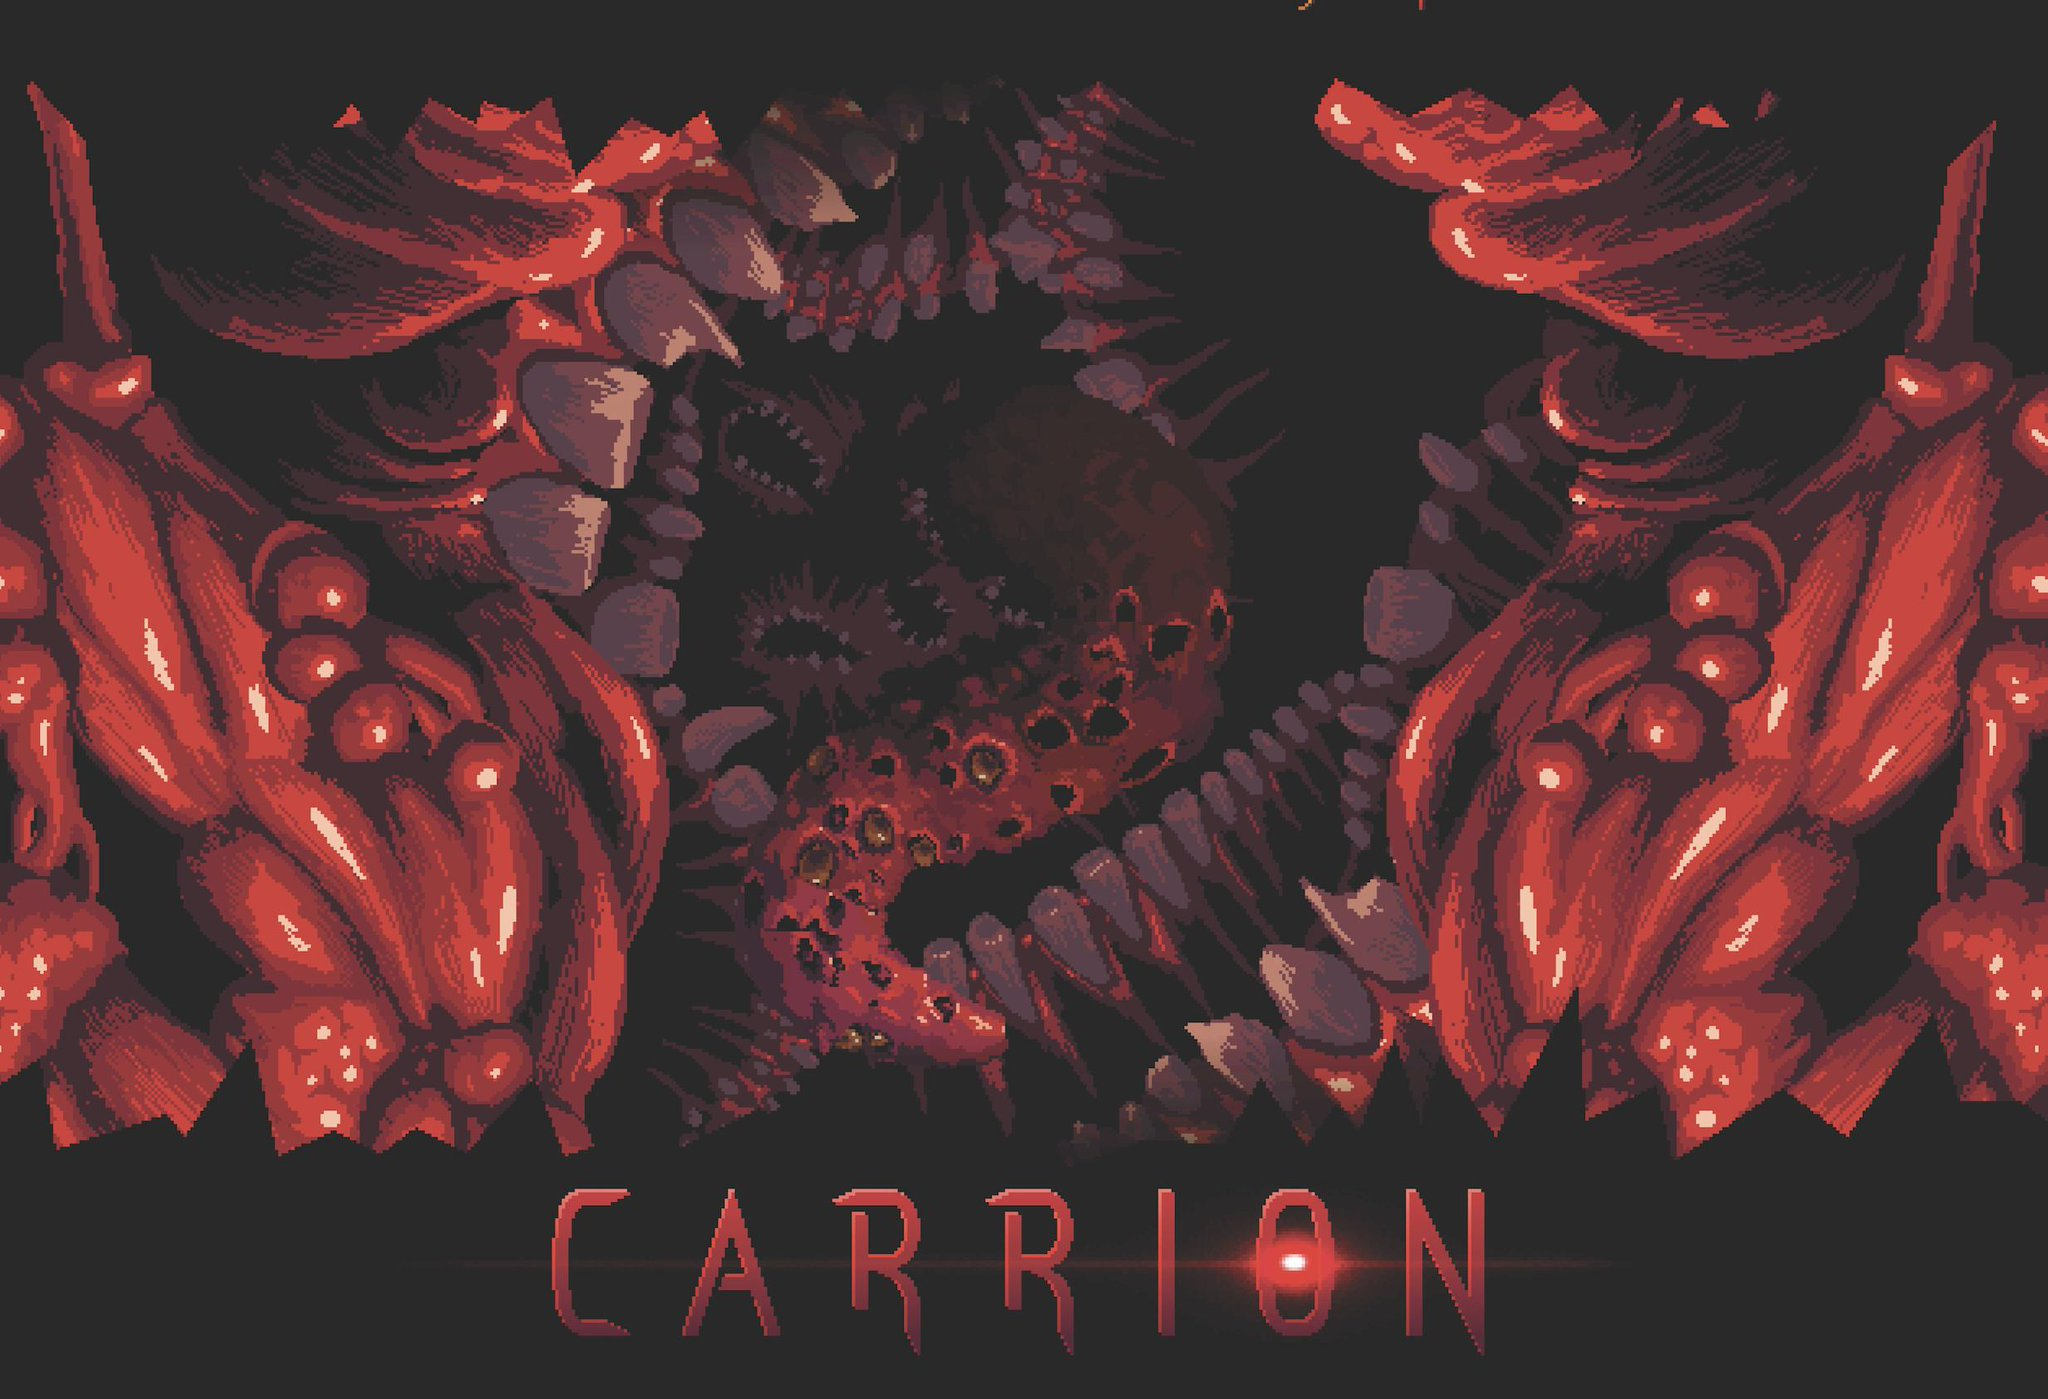 Devolver Digital On Twitter Devolver Digital Pax West 2019 Carrion Hands On With The Upcoming Savage Reverse